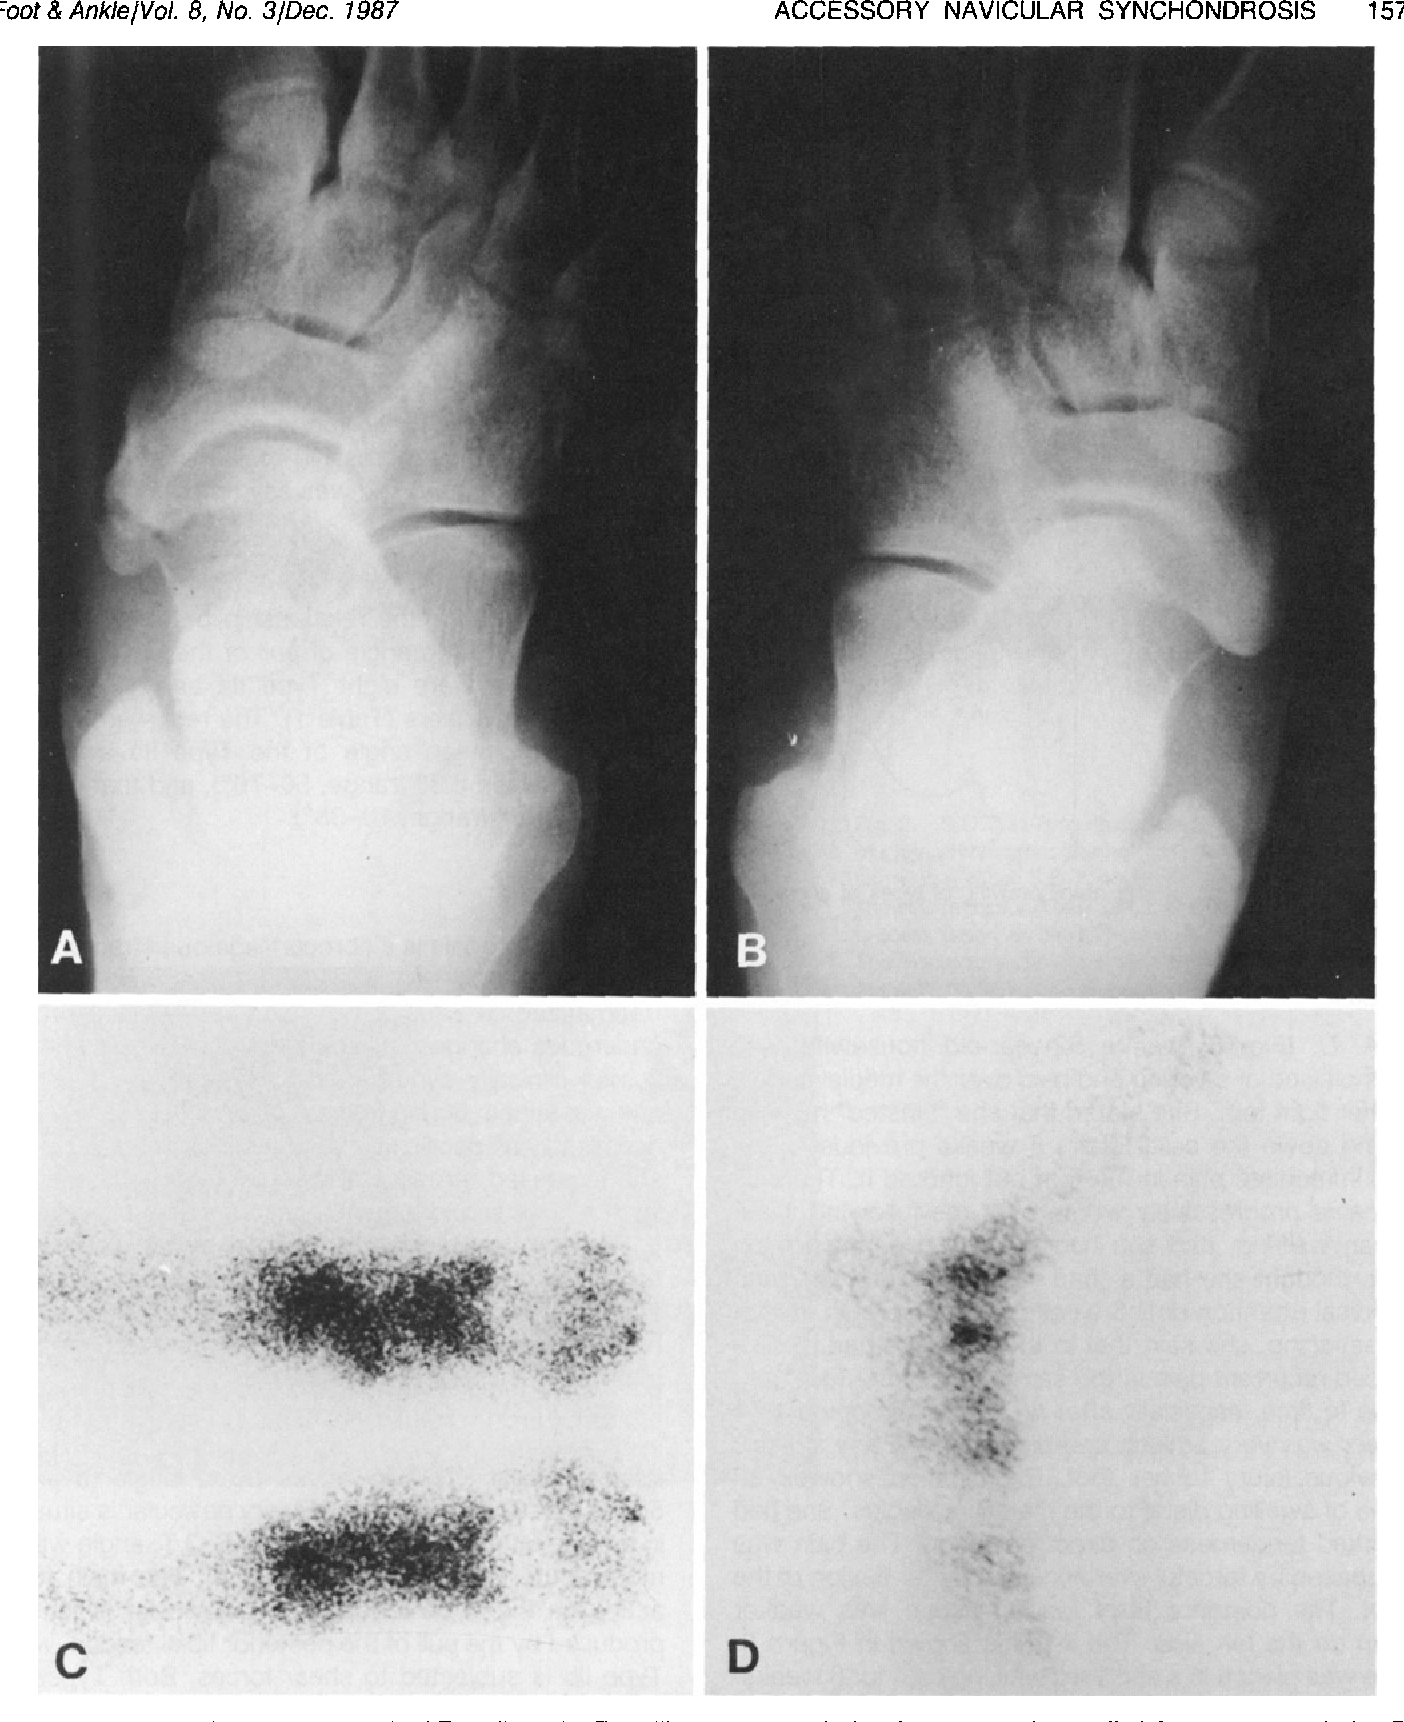 Biomechanics Of The Accessory Navicular Synchondrosis Semantic Scholar The synchondrosis between the accessory navicular and native navicular can typically be resect the accessory navicular (a 1/4 curved osteotome may facilitate the resection) through the. semantic scholar